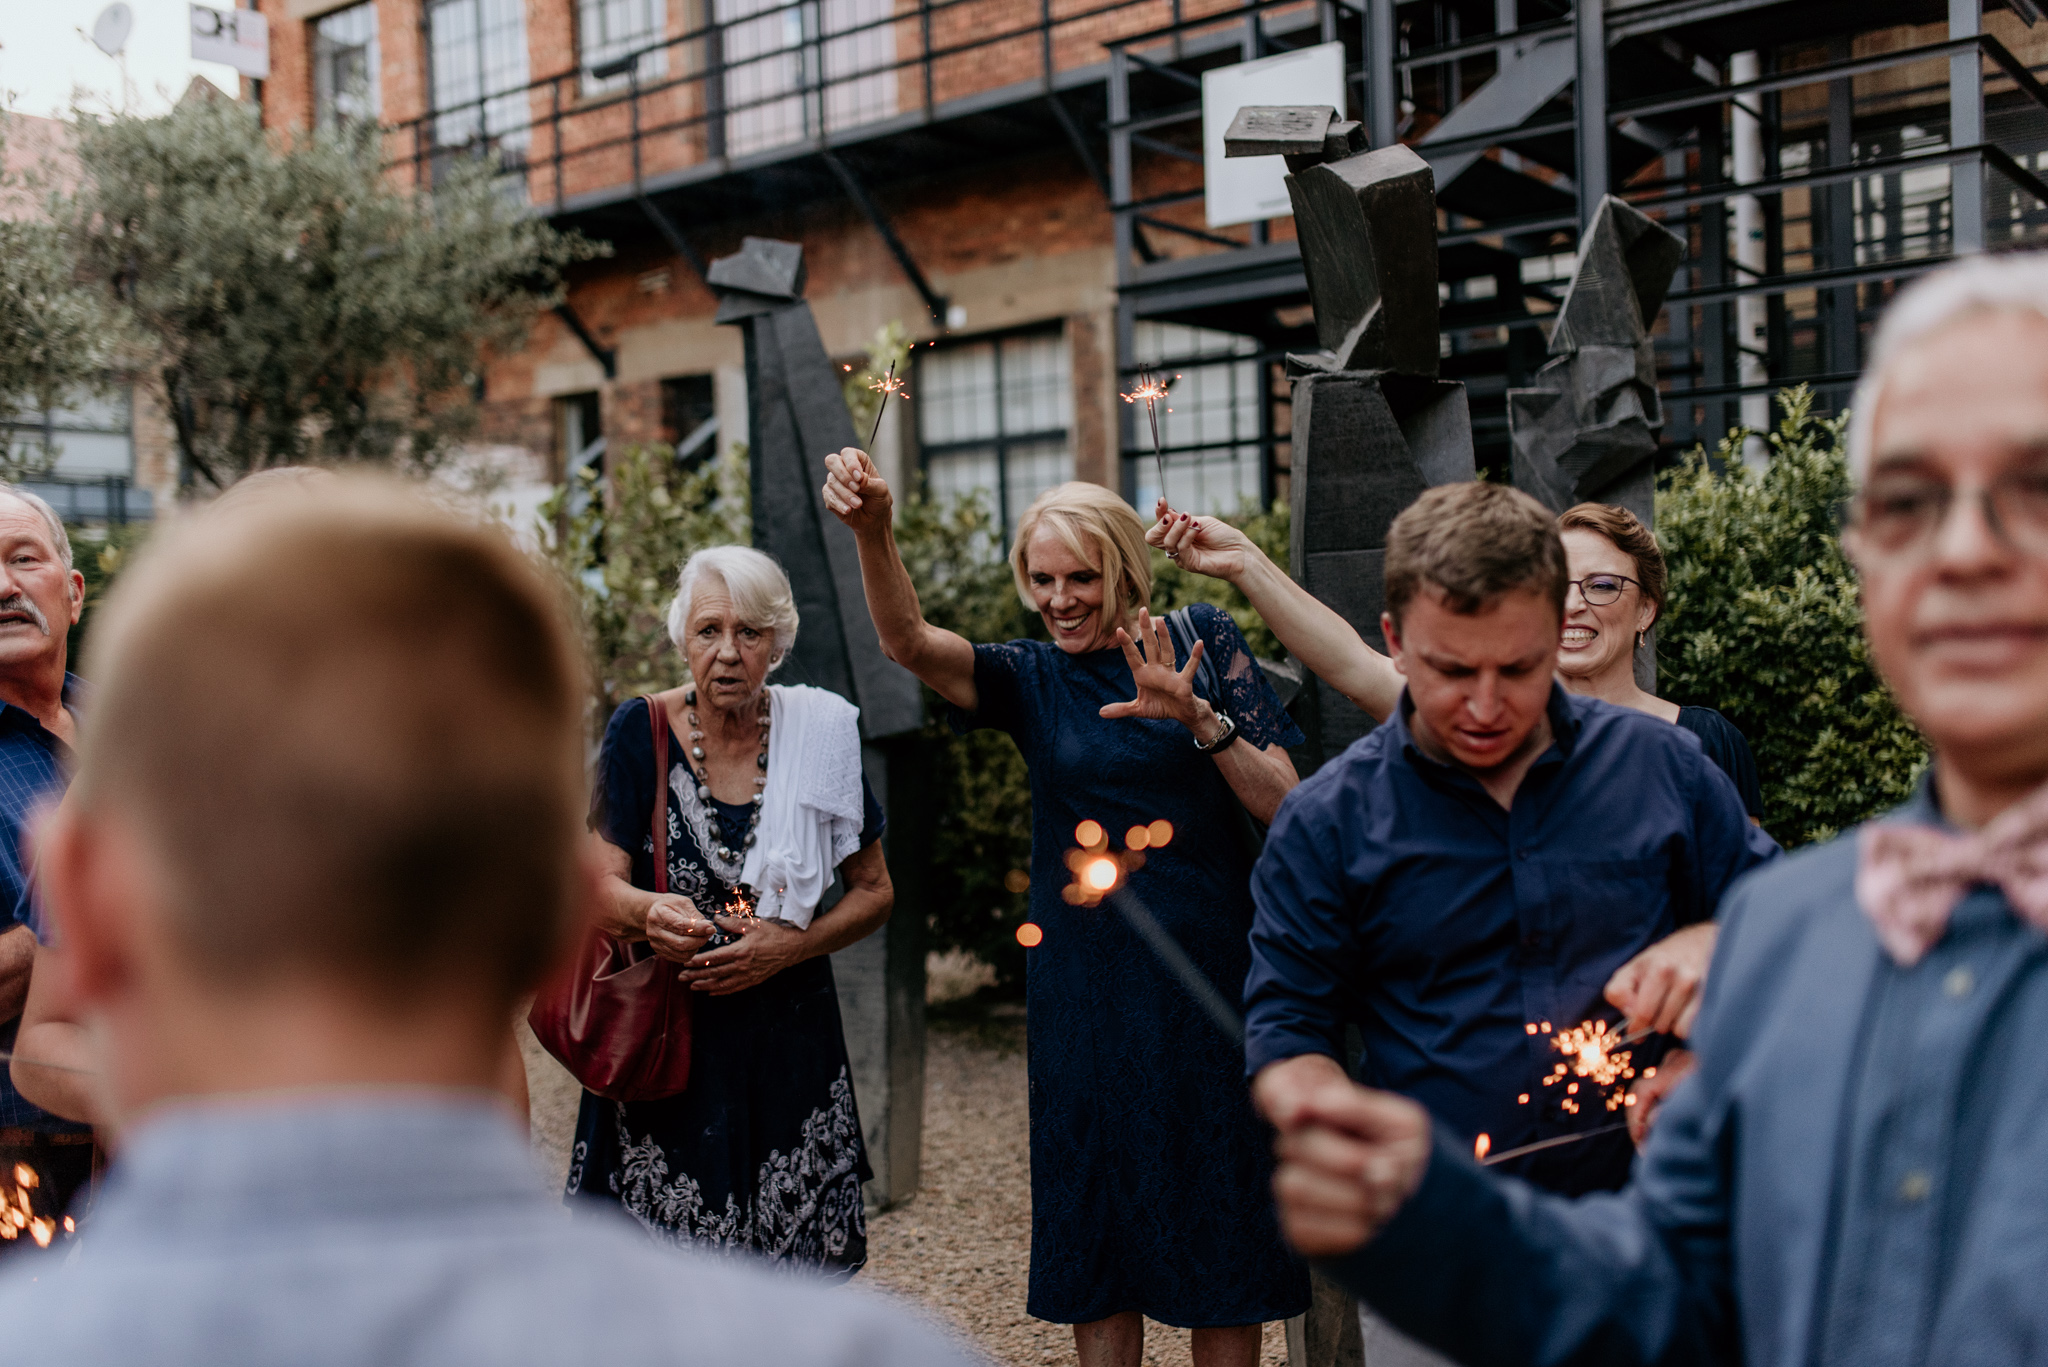 Wedding guests light up sparklers at Arts on Main Maboneng wedding